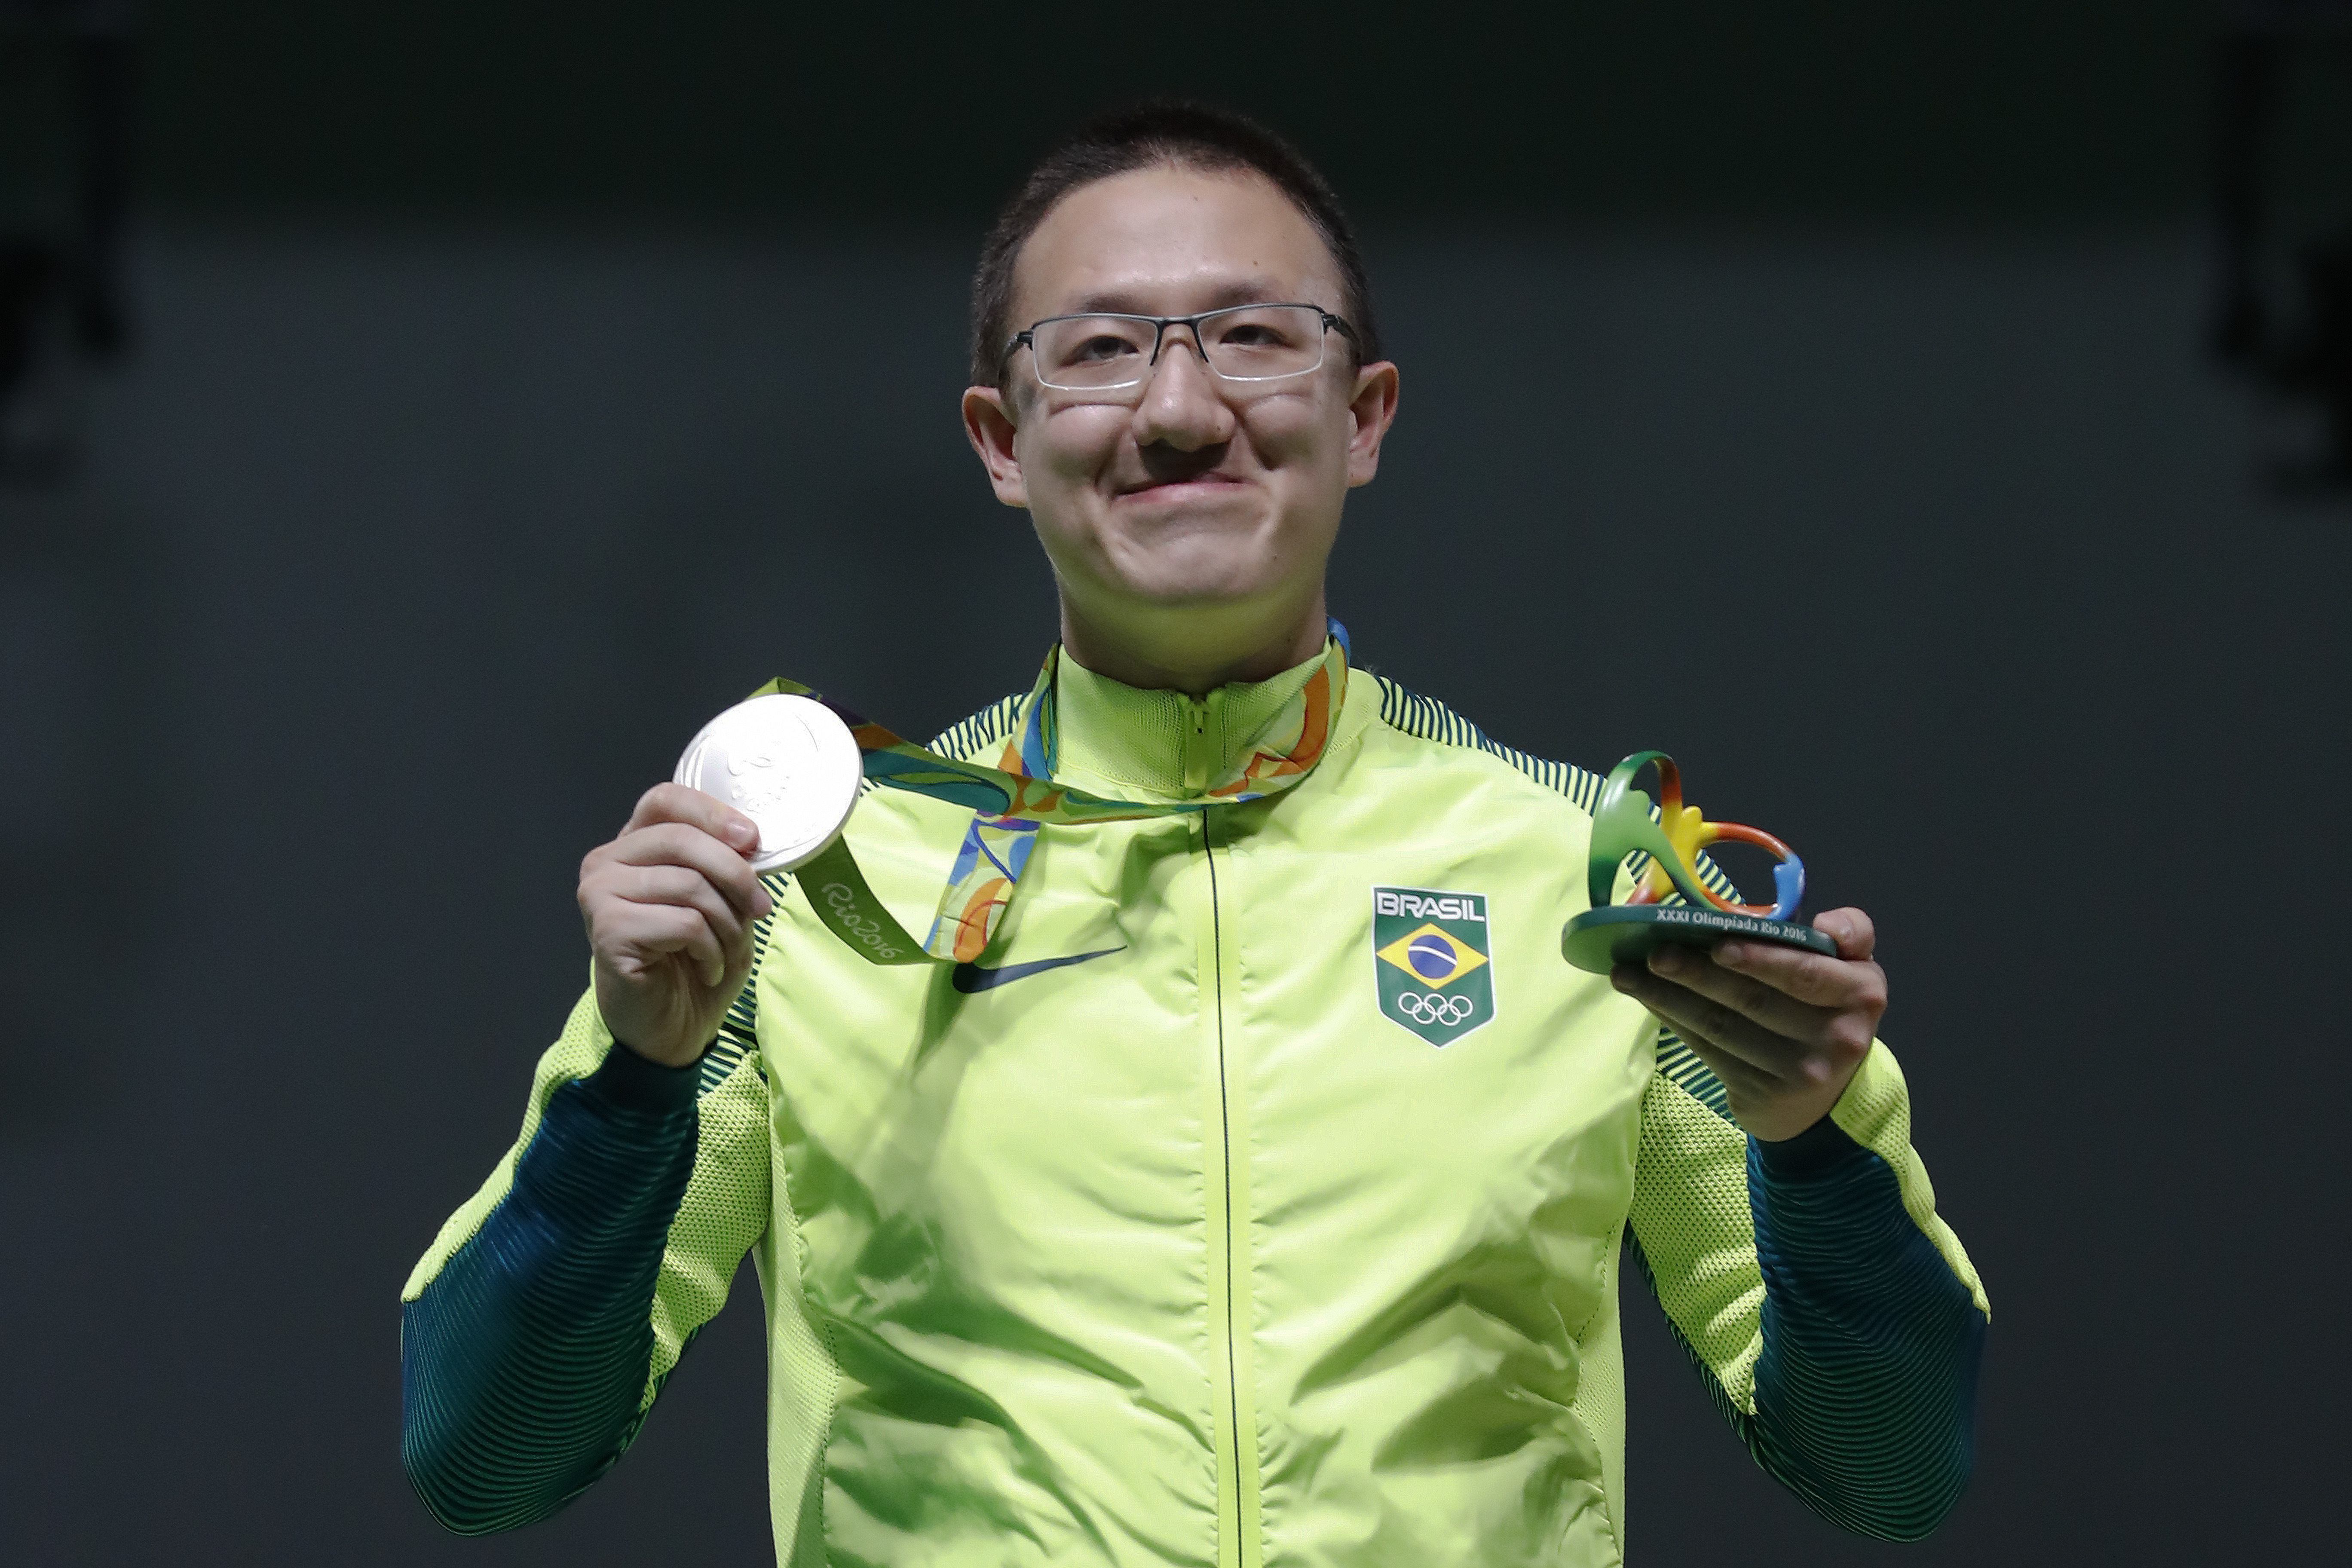 Felipe Wu of Brazil poses for photographers with his silver medal during the award ceremony of the men's 10-meter air pistol event at Olympic Shooting Center at the 2016 Summer Olympics in Rio de Janeiro, Brazil, Saturday, Aug. 6, 2016. (AP Photo/Hassan A